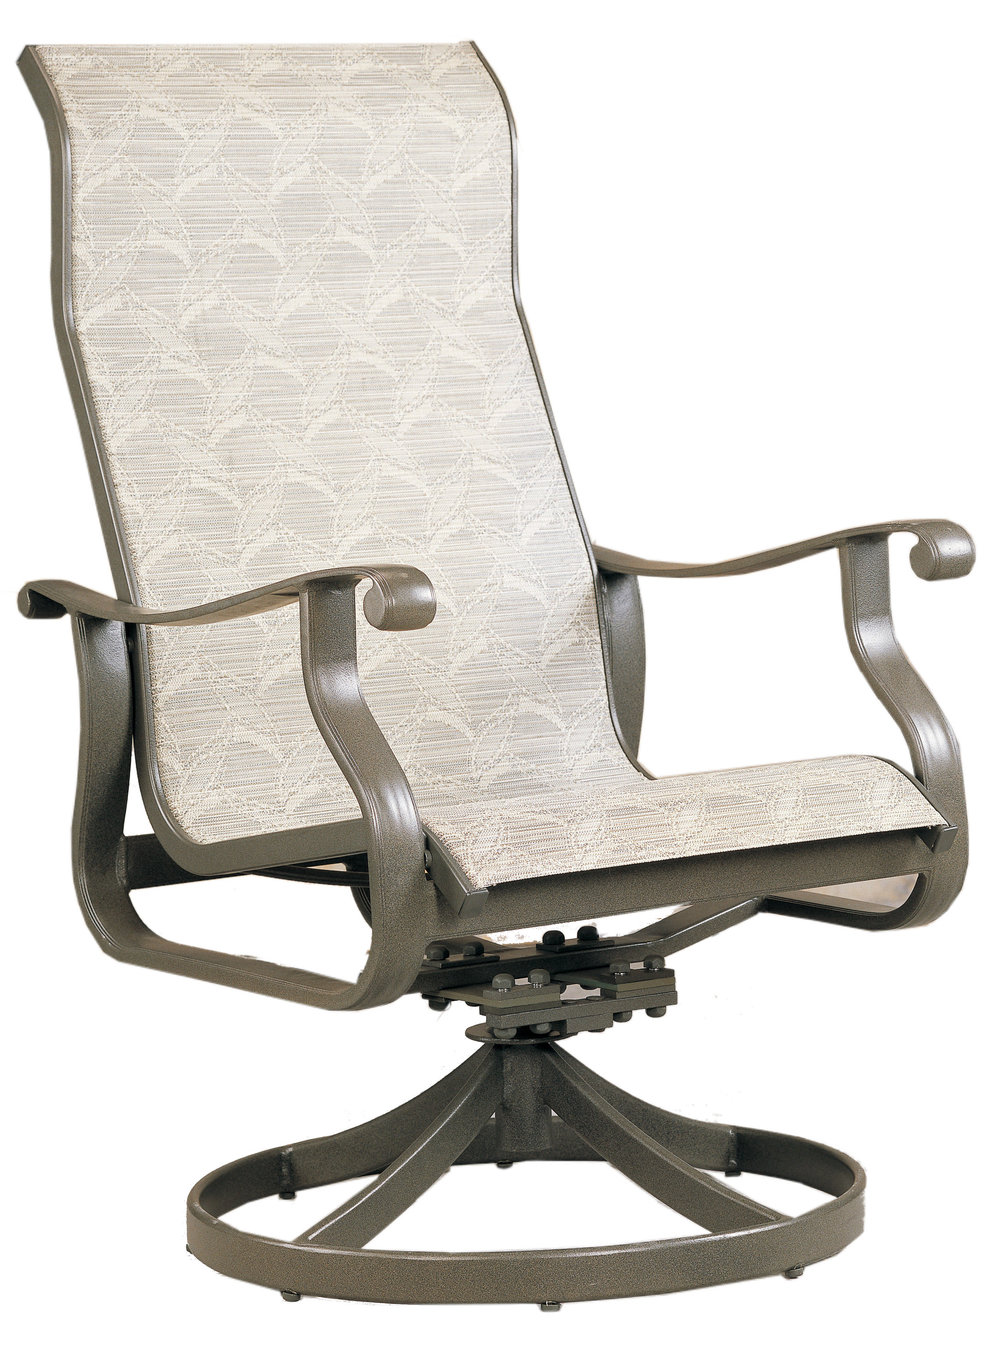 "970523H Mandalay HB Dining Swivel Rocker   25.2"" x 30"" x 42"""